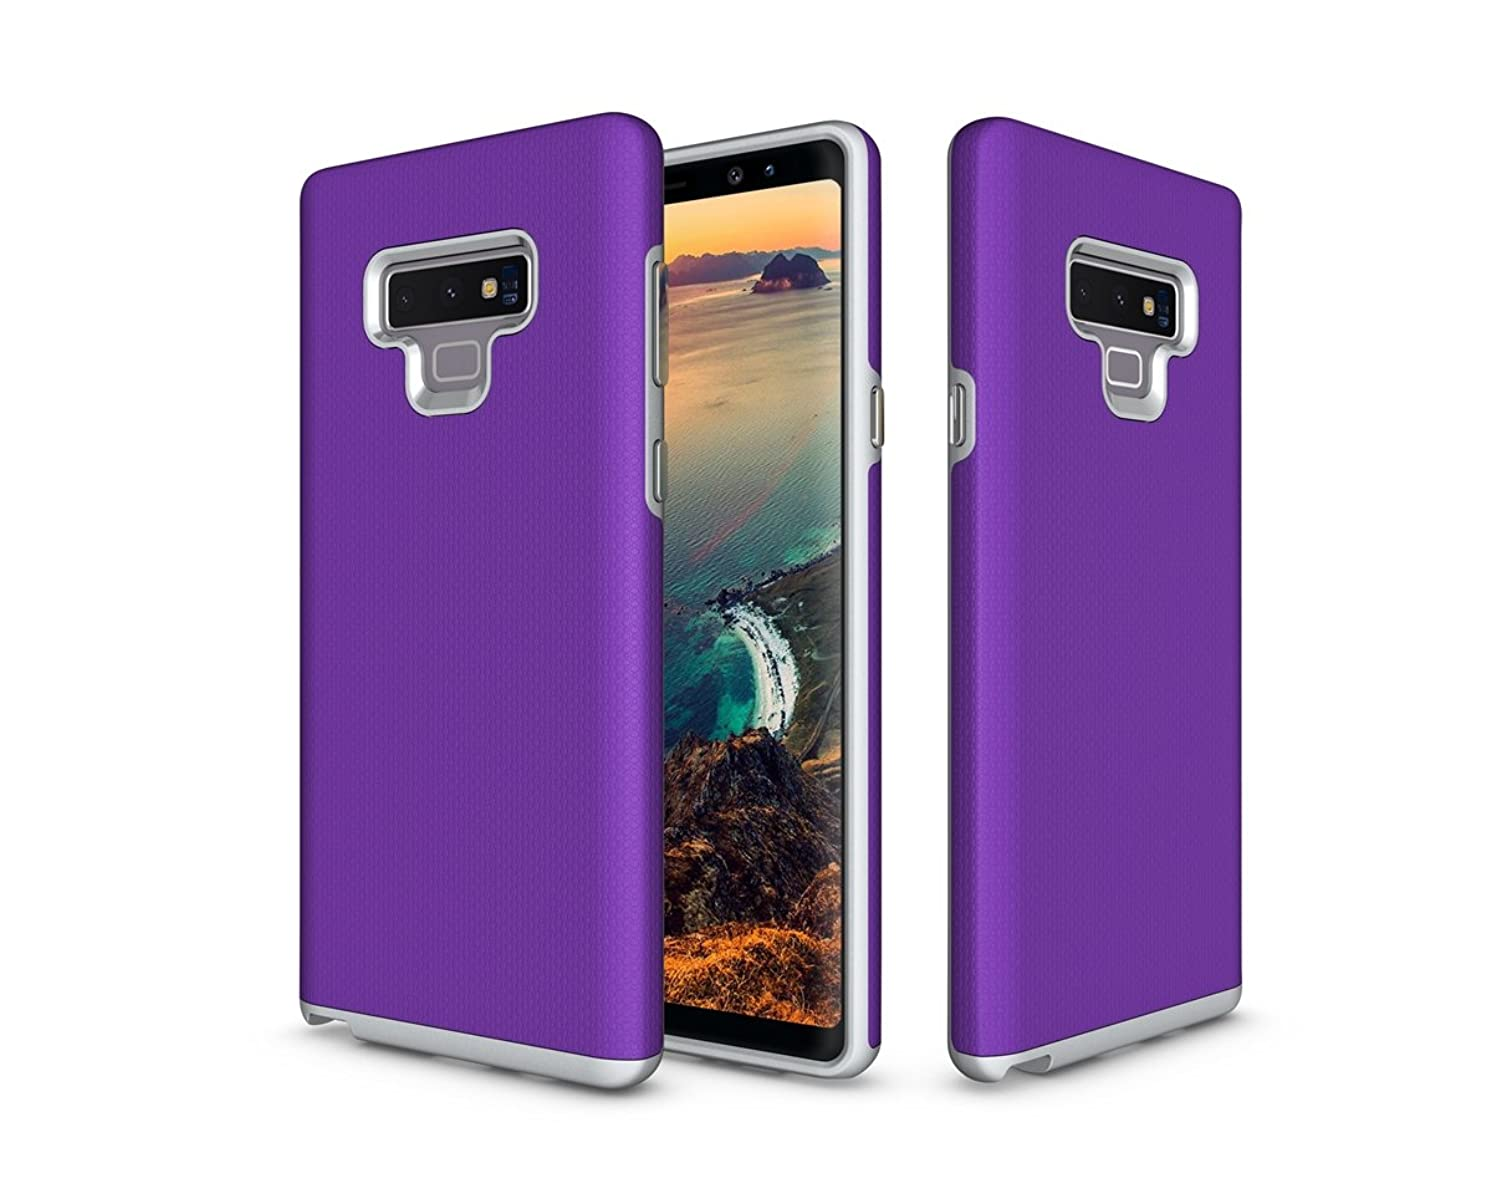 zukabmwus Samsung Galaxy Note 9 Case, Thin Slim Bumper Full Lens Protection Skin Soft Case Back Cover Compatible with Samsung Galaxy Note 9 - Purple